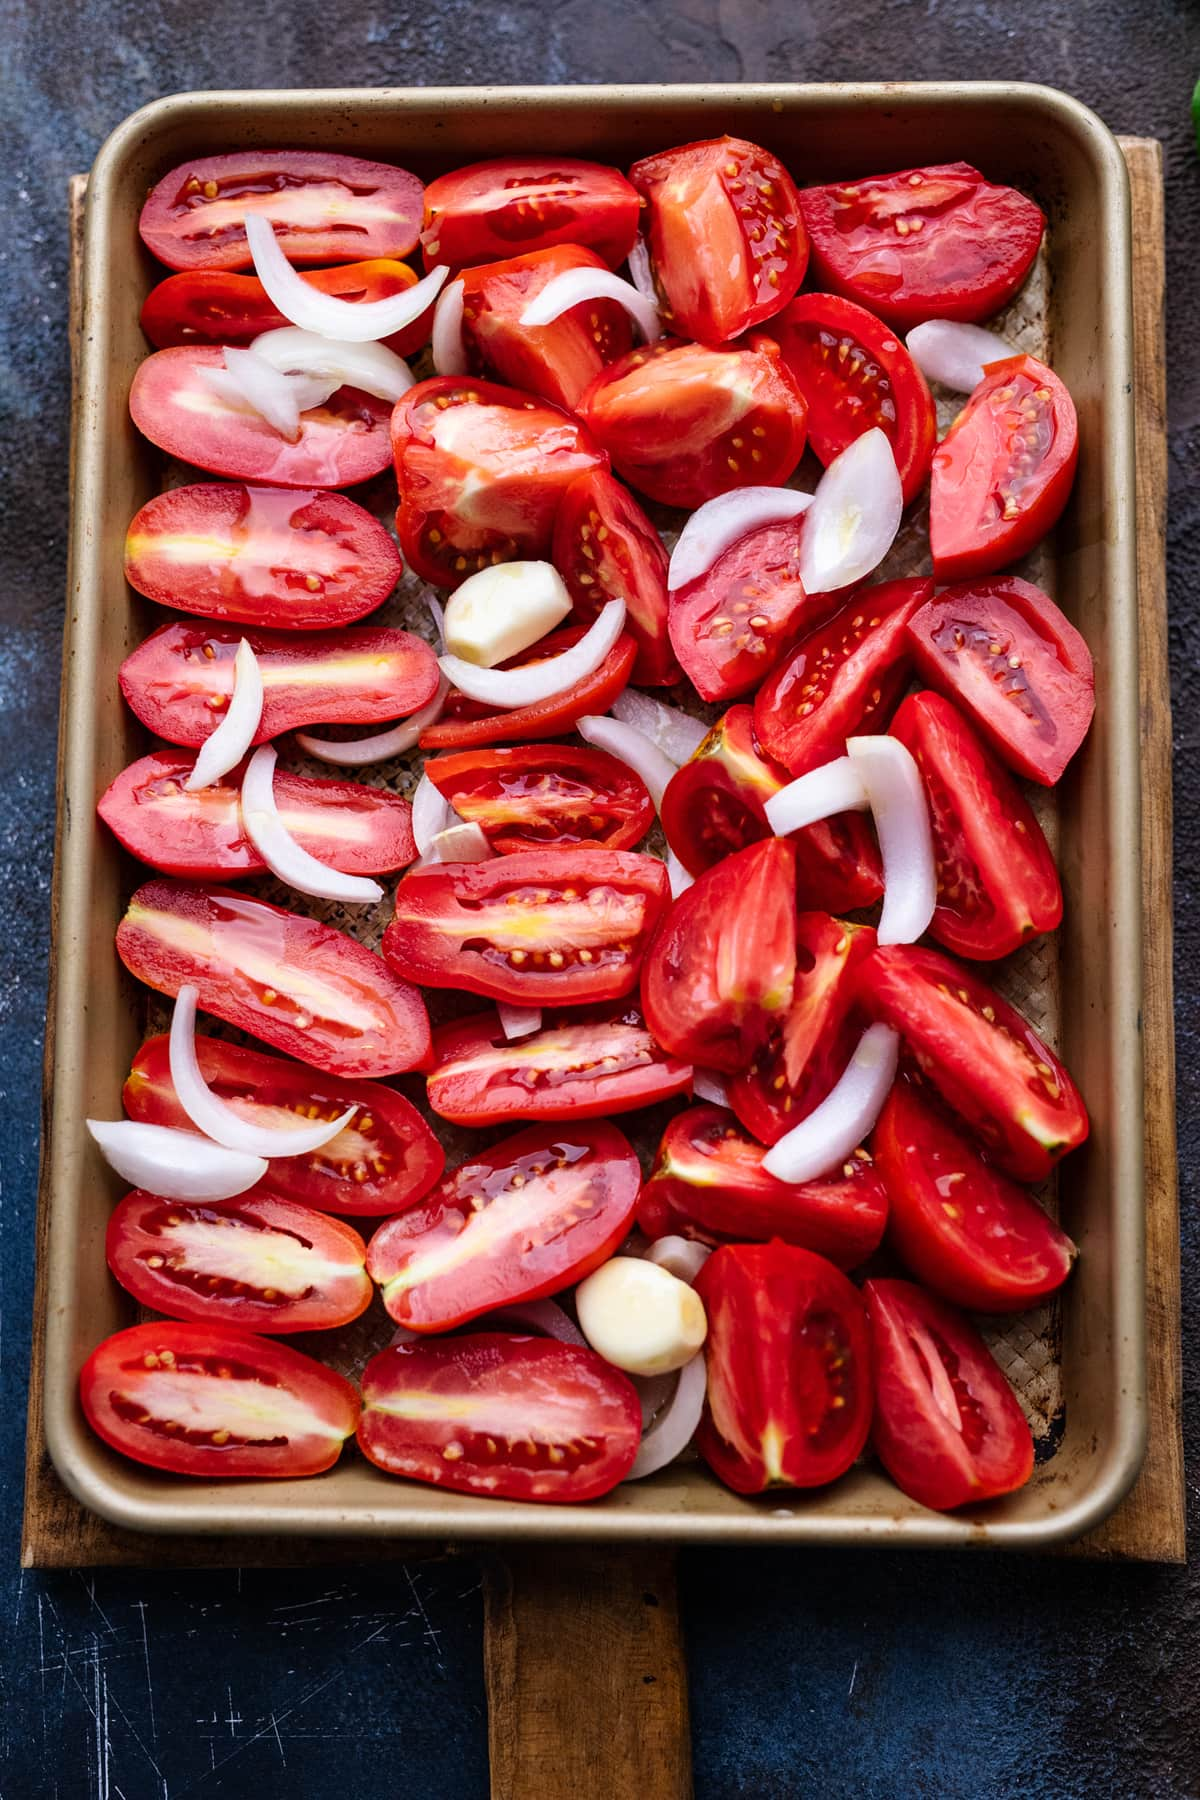 Halved tomatoes and sliced onions on a sheet pan. This pan is arranged on a cutting board that is sitting on a dark gray background.